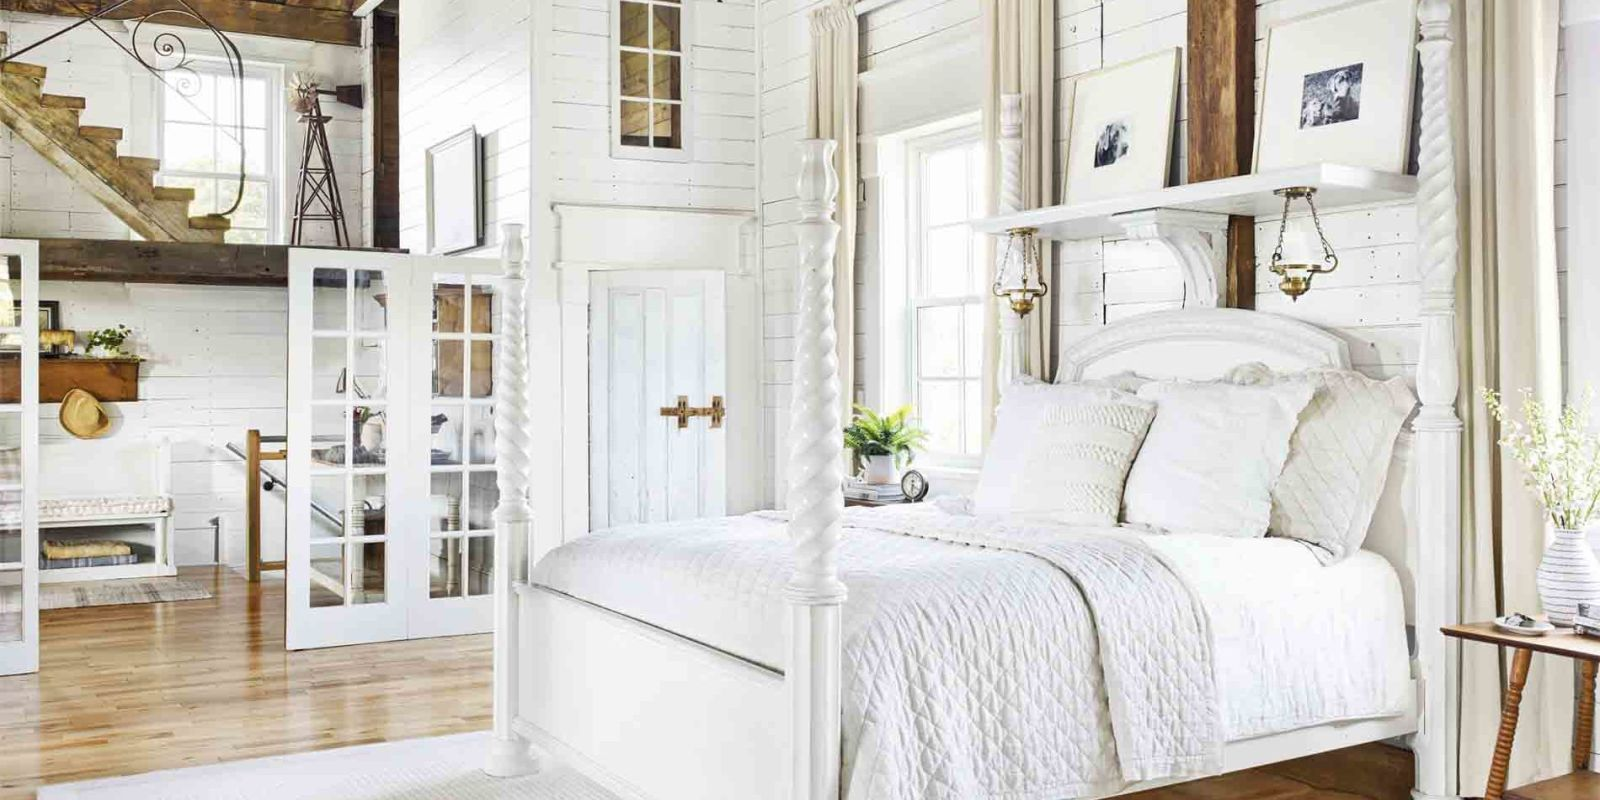 Delicieux Create A Sleeping Space Thatu0027s Clean And Calm (and Anything But Boring!)  With Our White Decor Ideas For Your Bedroom.